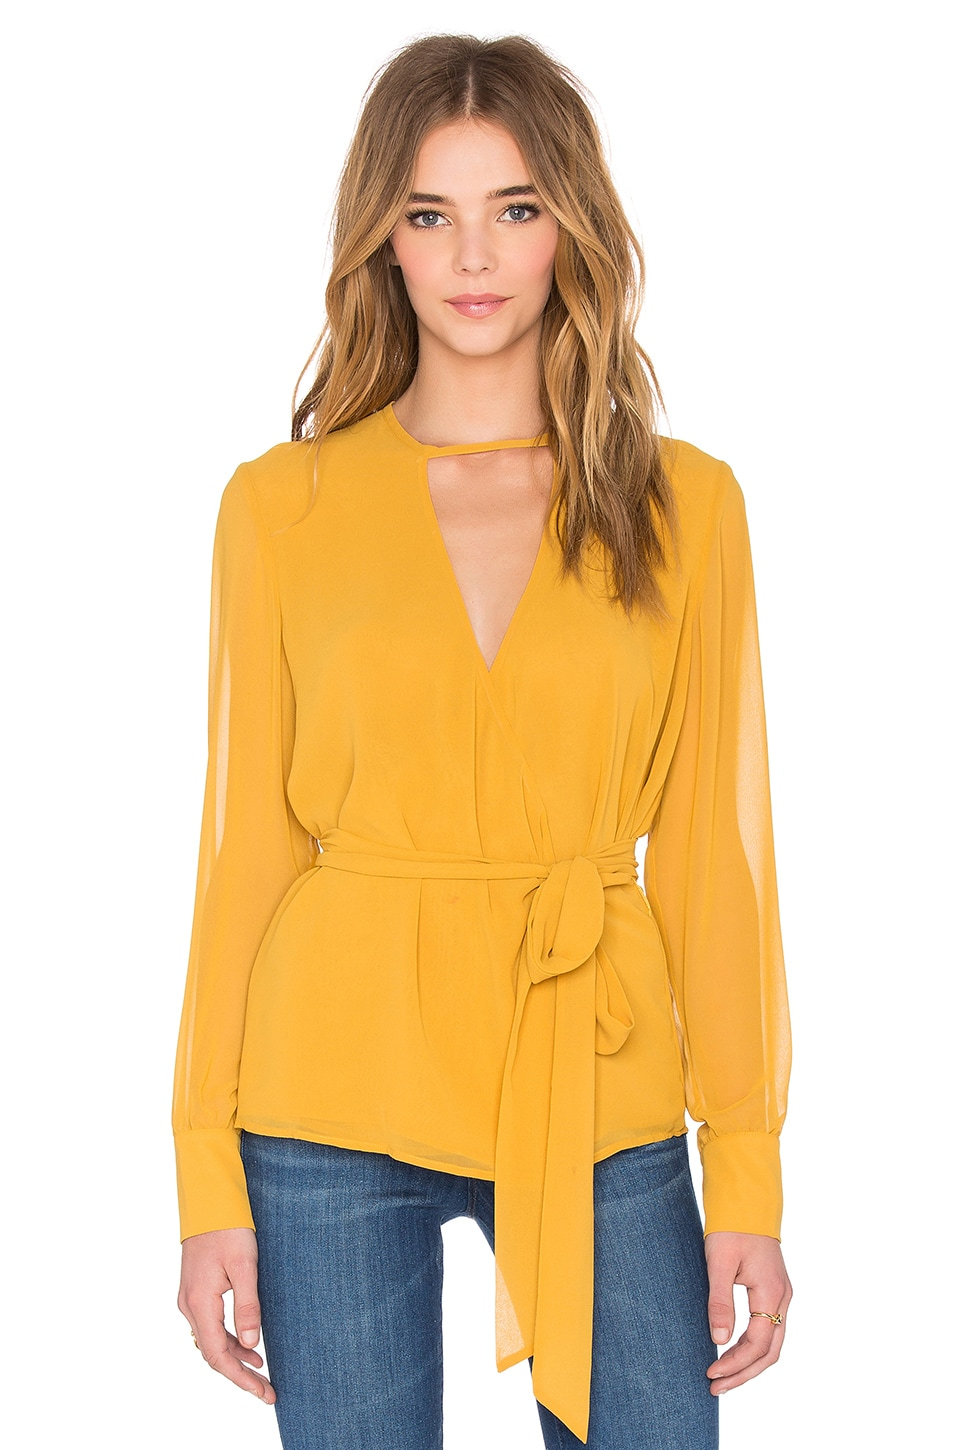 Finders Keepers Float On Top in Mustard